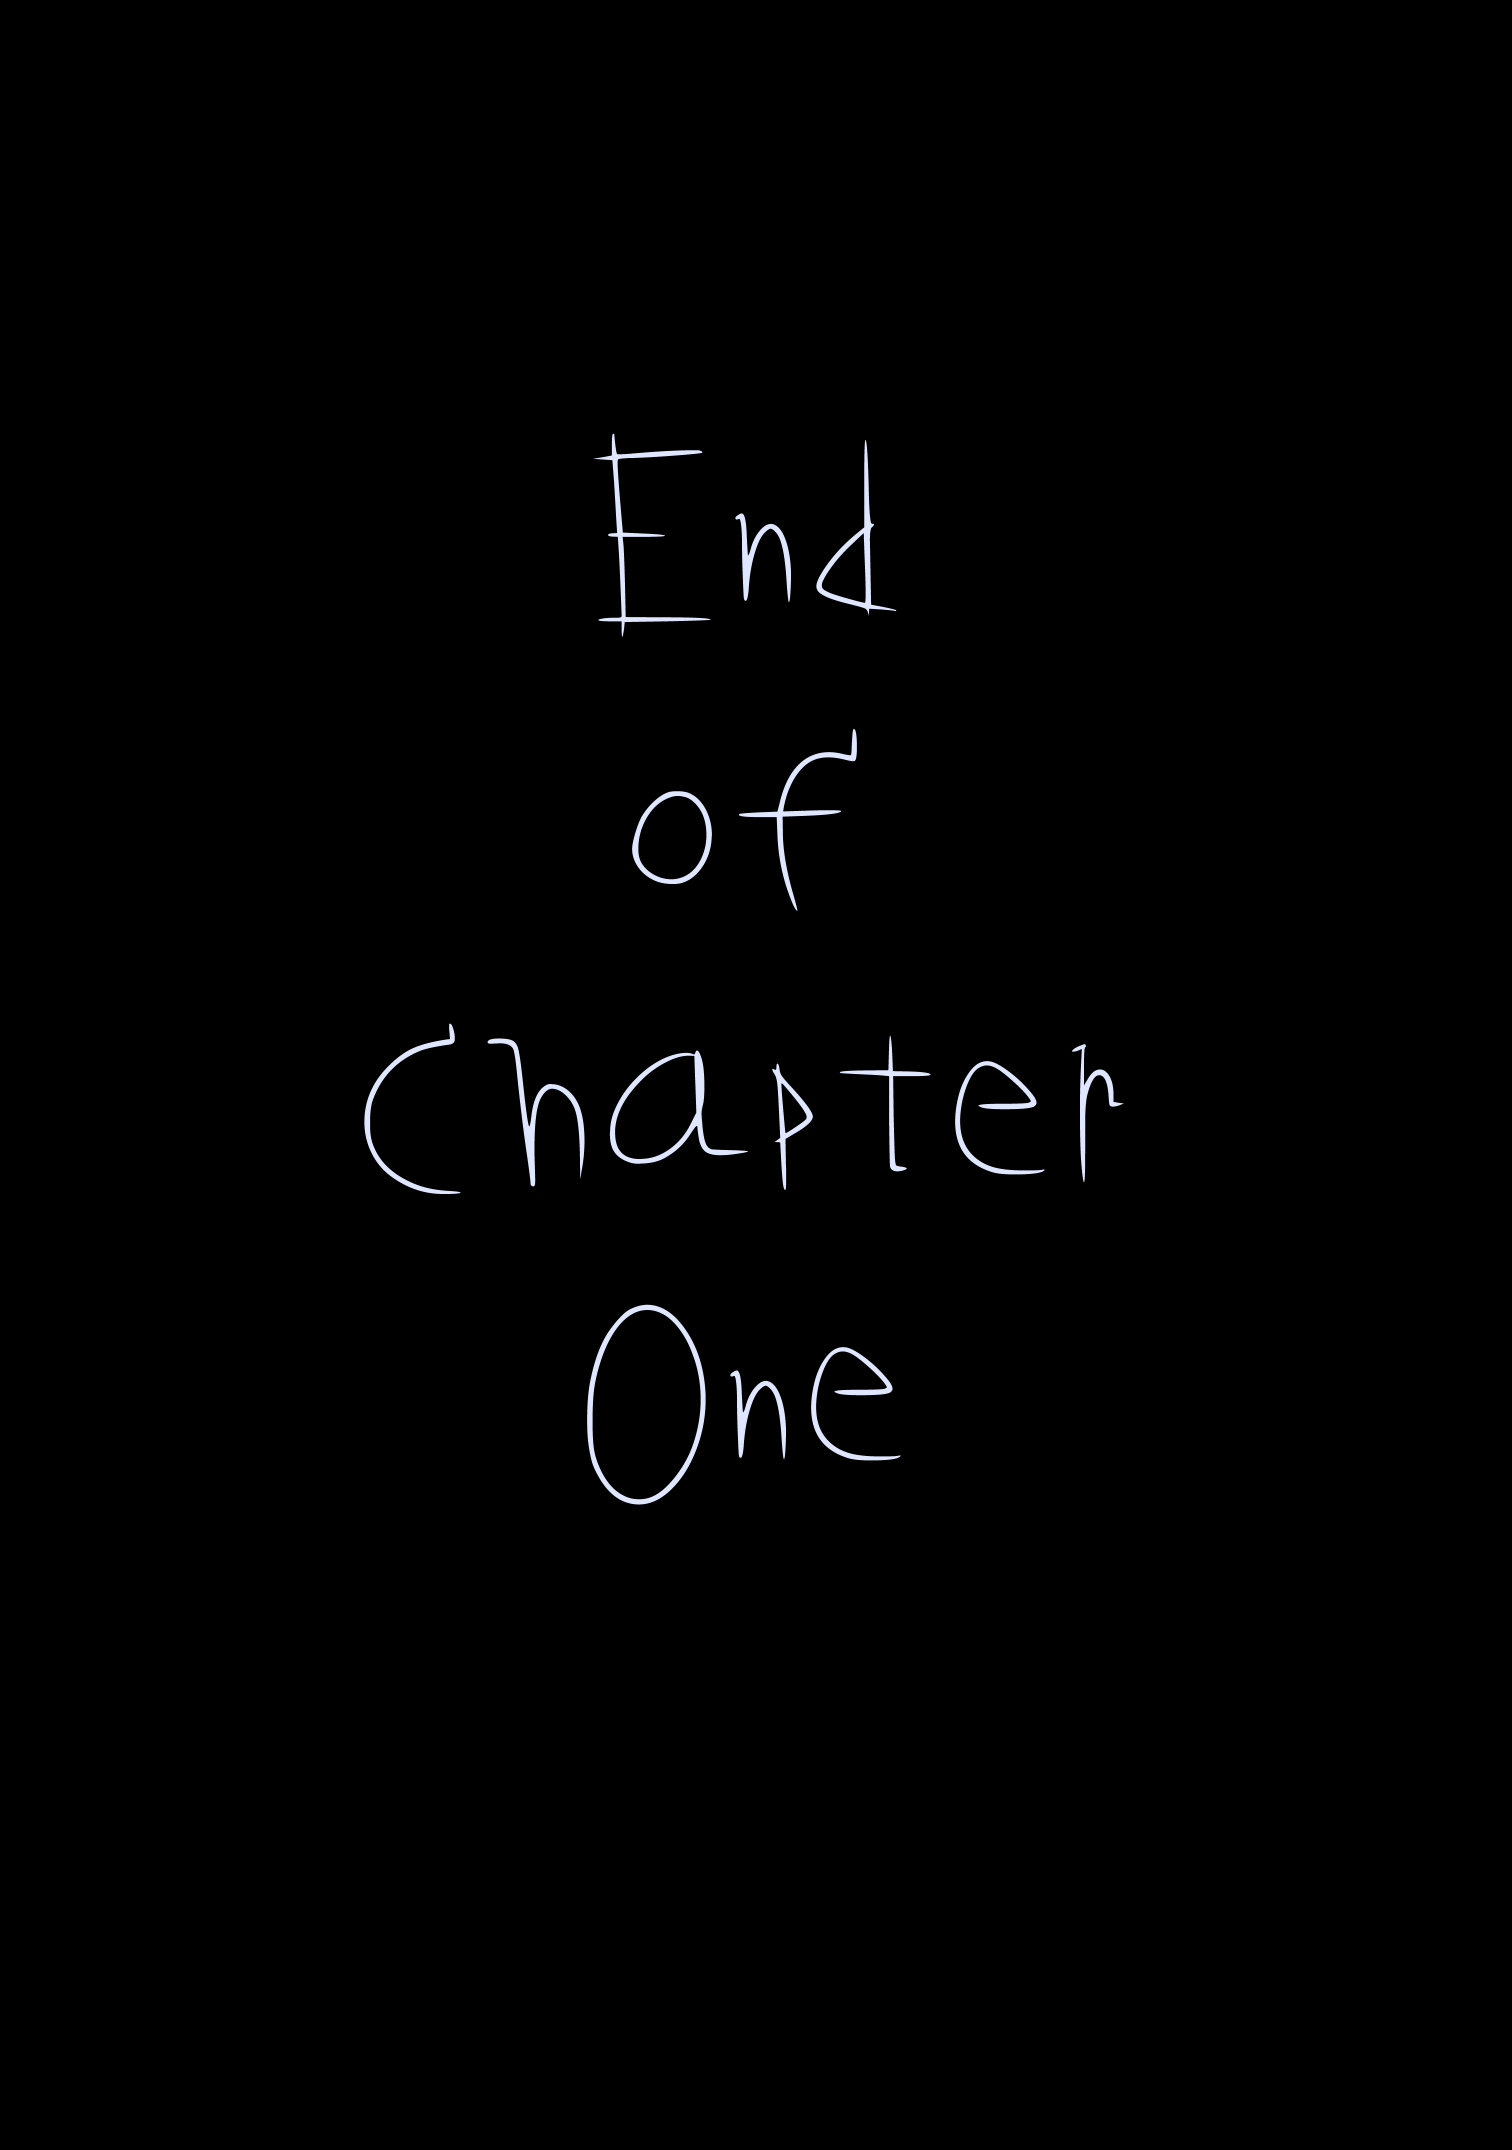 -End of Chapter 1-